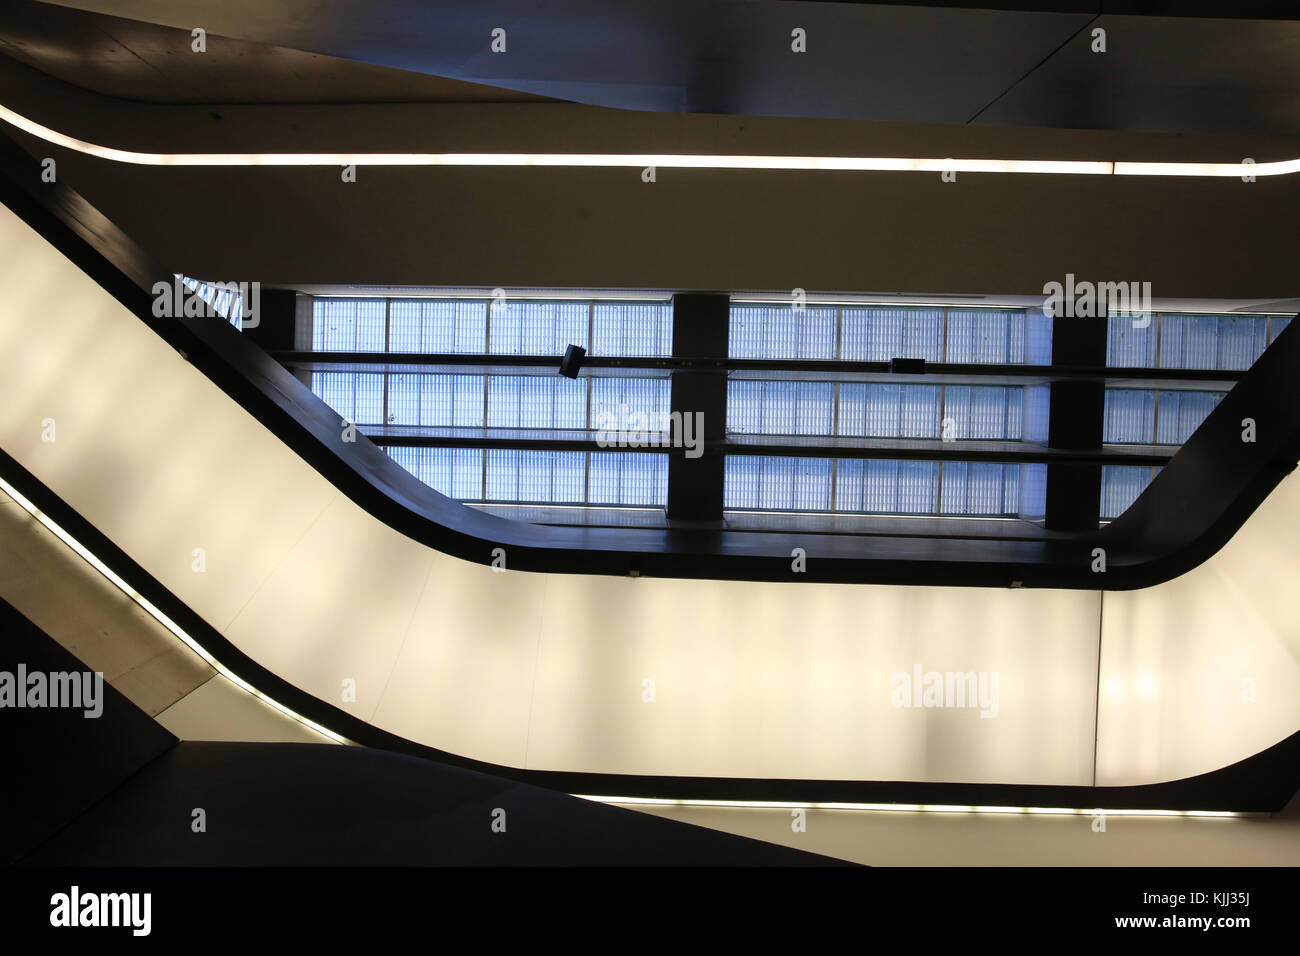 MAXXI, National museum of 21st century Art, Rome. Italy. Stock Photo